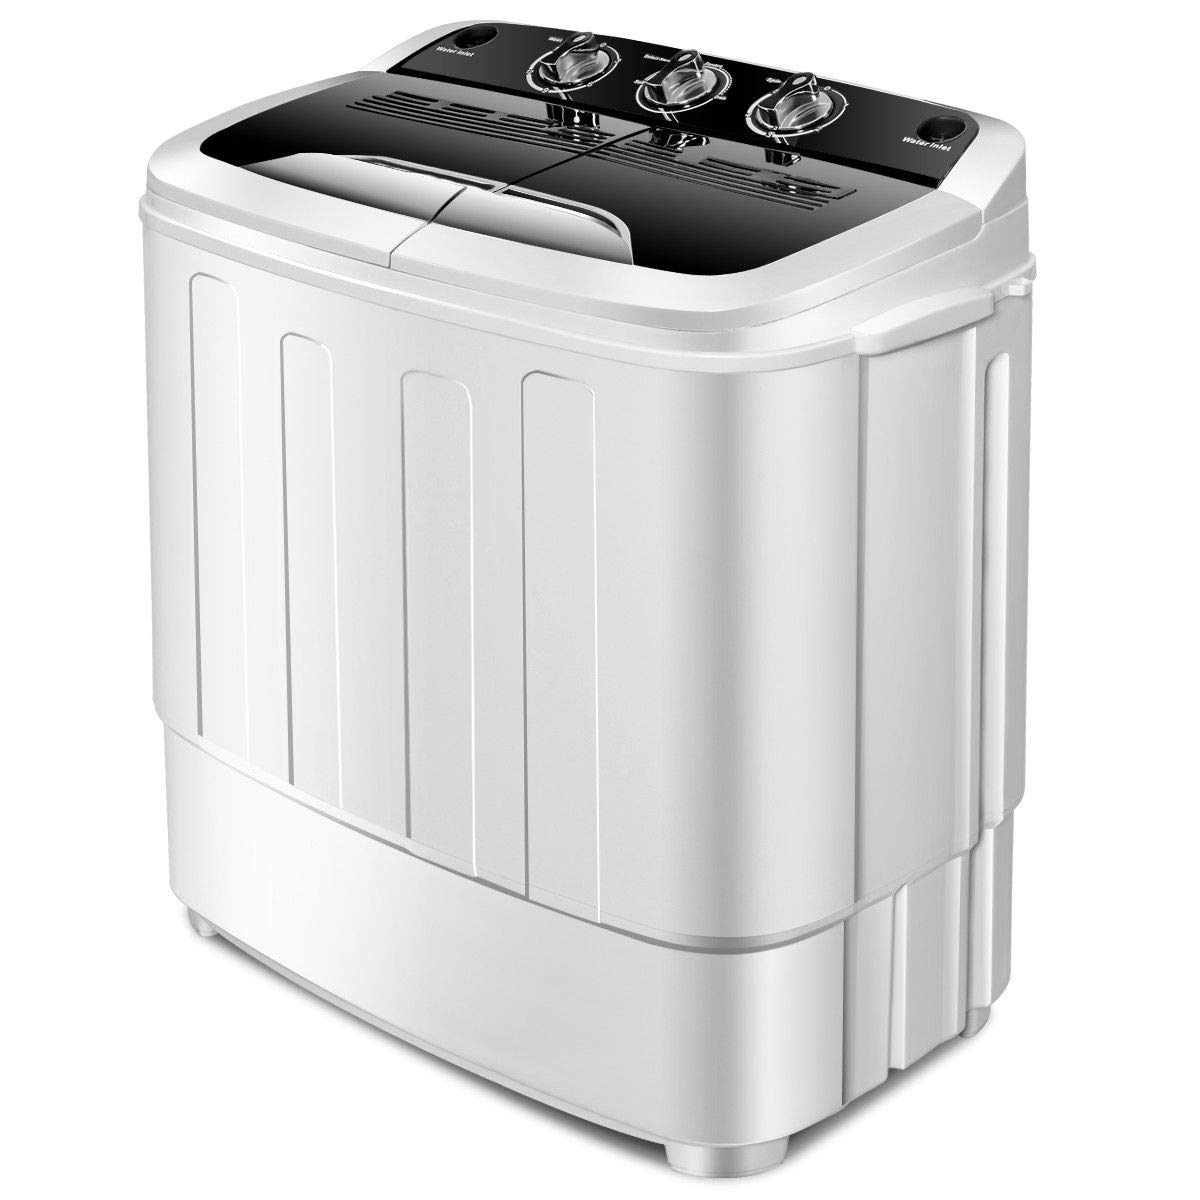 Giantex Portable Compact 13 Lbs Mini Twin Tub Washing Machine Washer Spin Dryer (Black&White) by Giantex